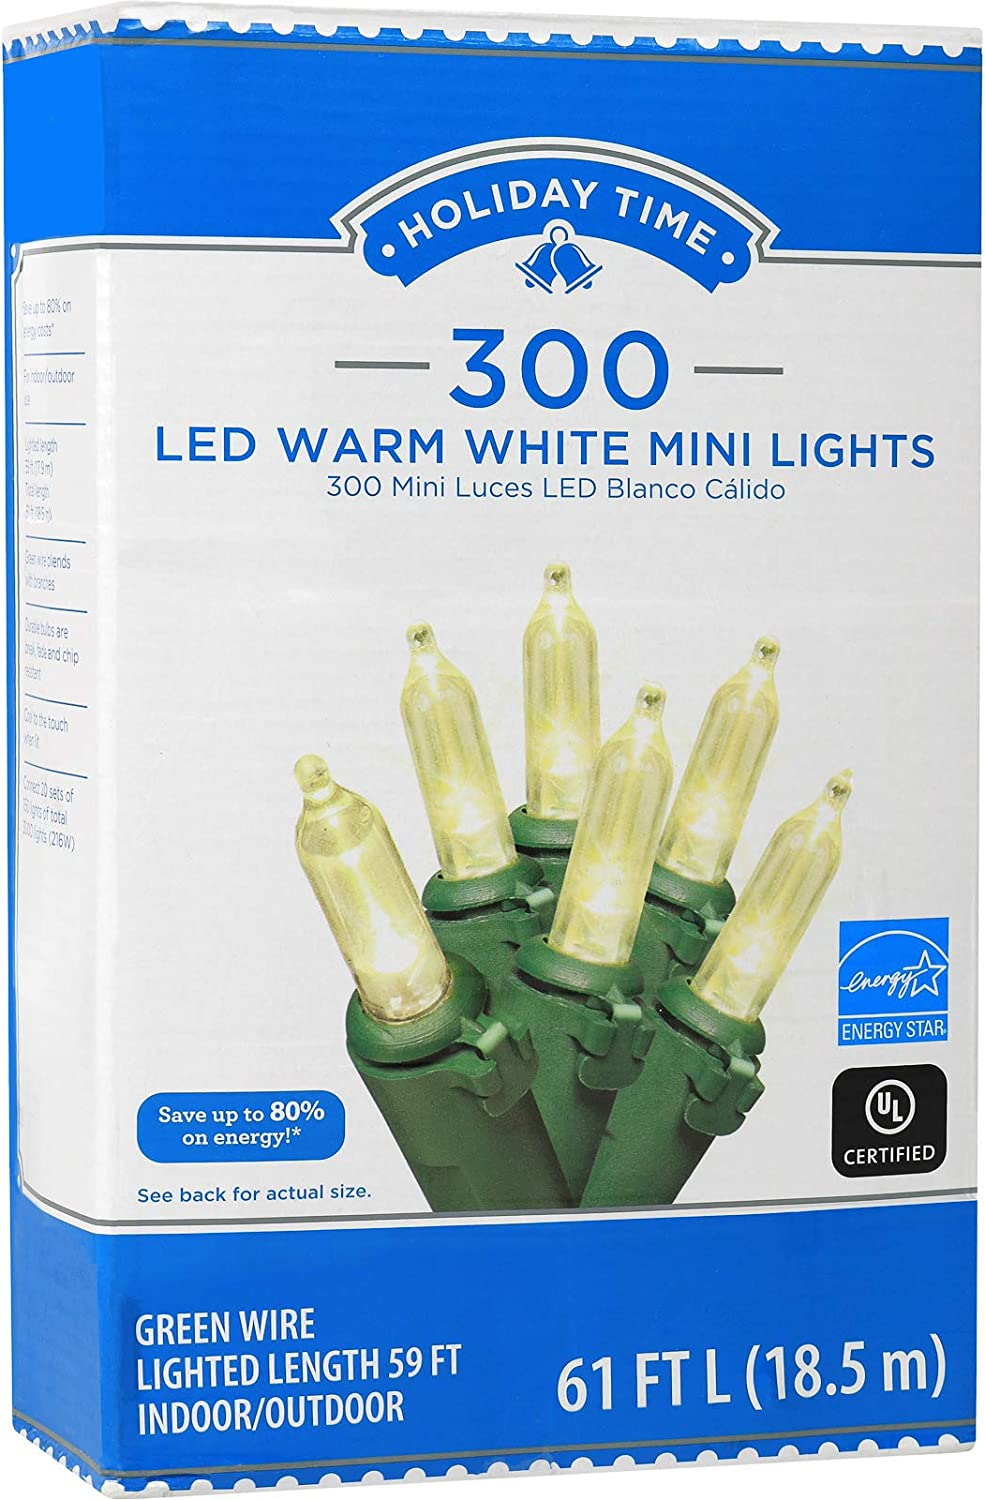 Holiday Time 300 LED String Lights Warm White Mini Lights 61 FT Long Plug in for Indoor Outdoor Christmas Tree Garden Wedding Party Decoration.